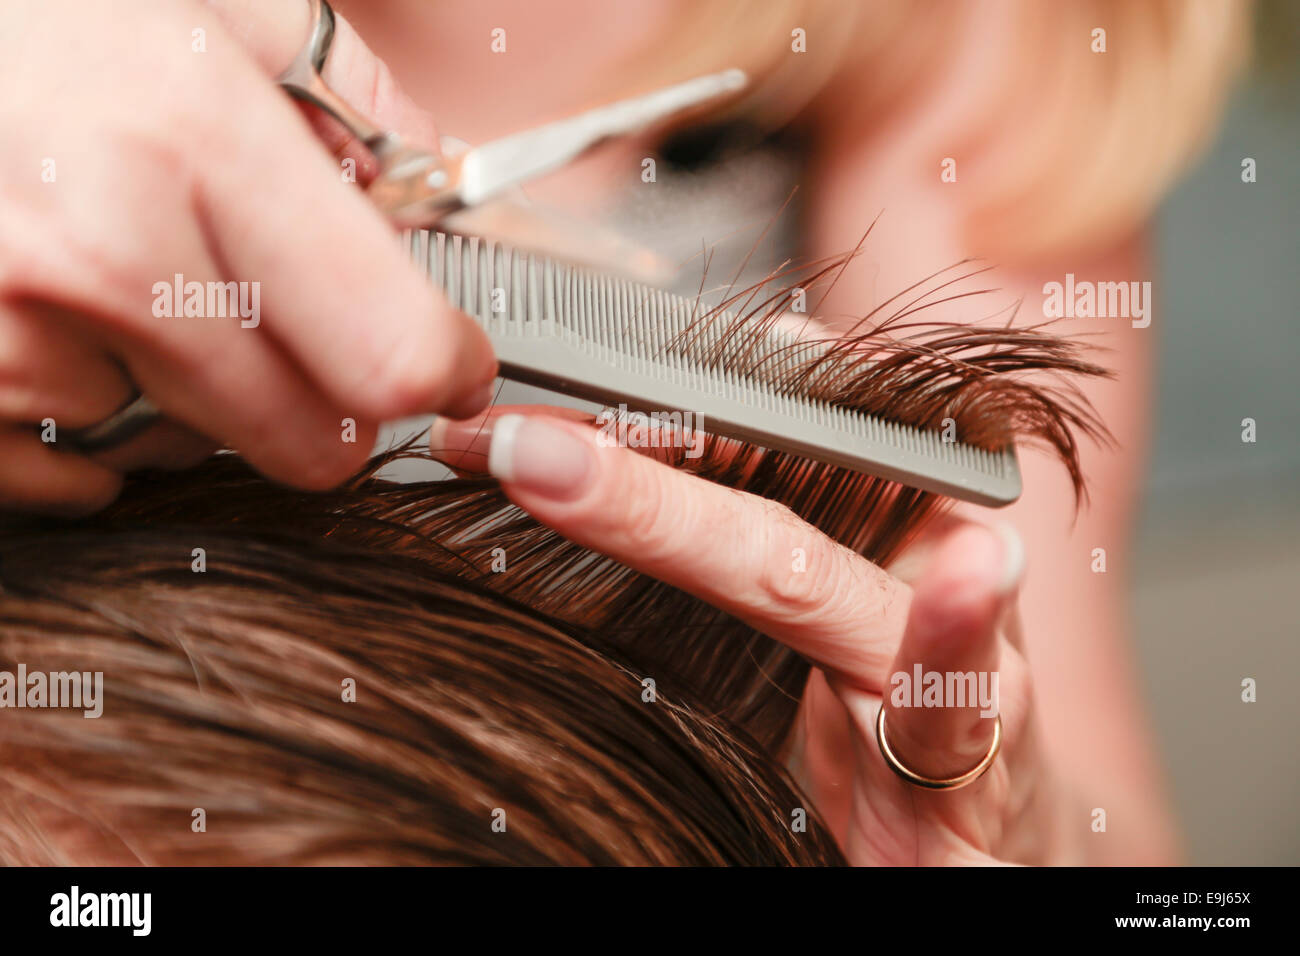 Hands cutting the hair of a young man - Stock Image